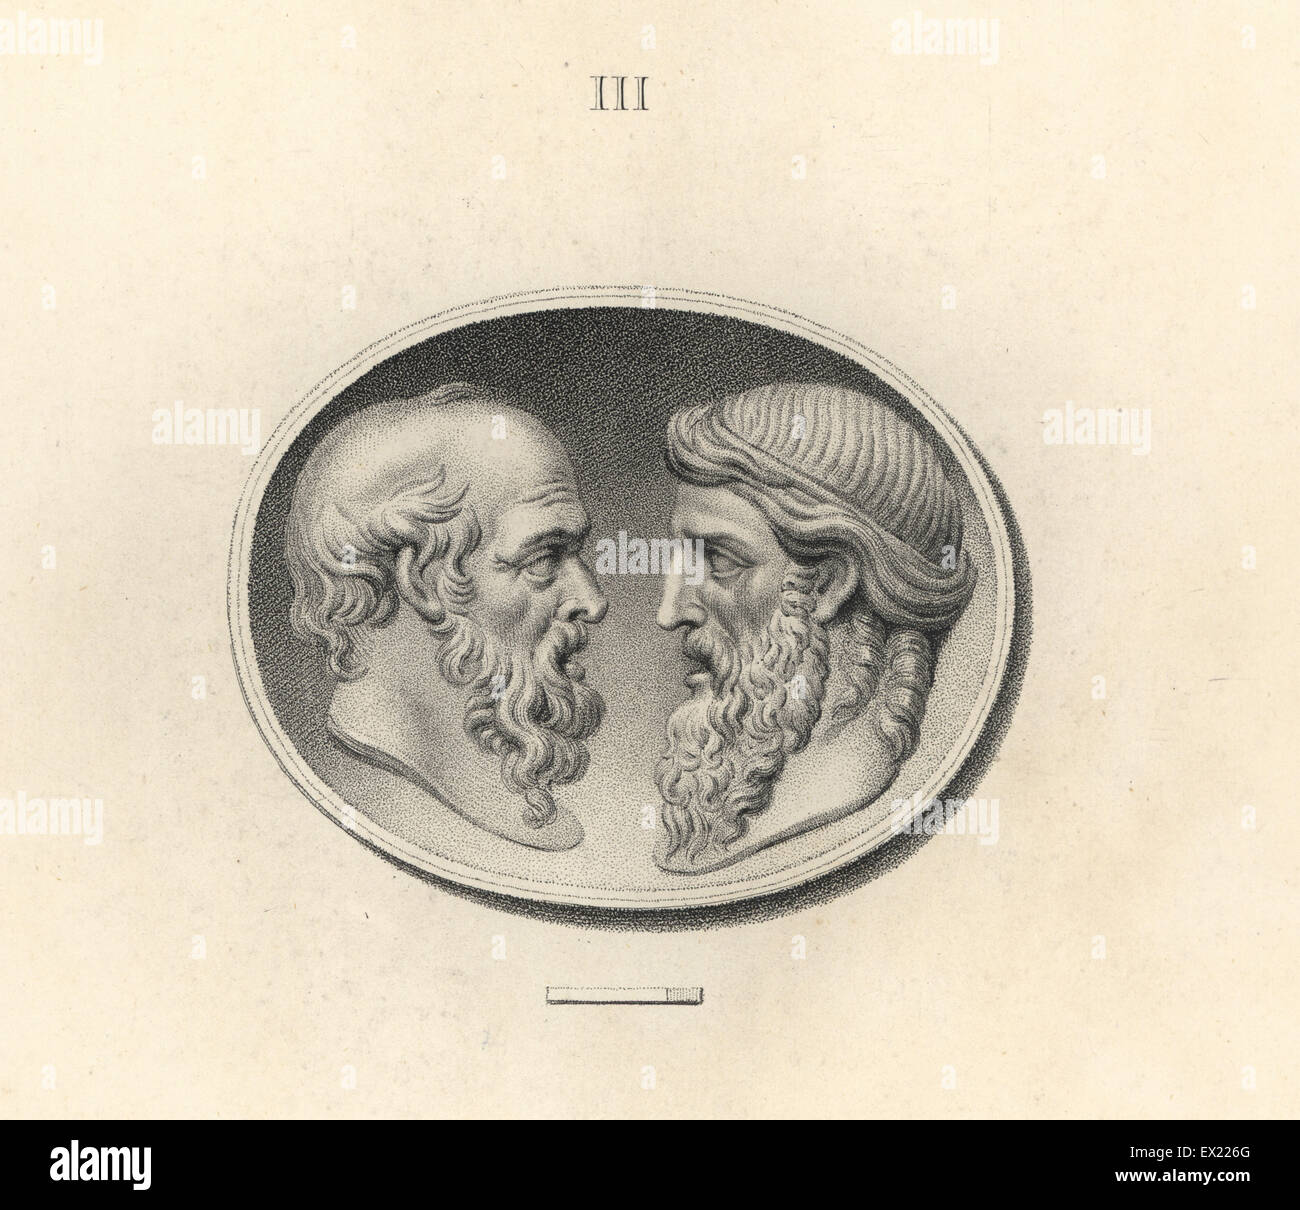 Heads of the Greek philosophers Socrates and Plato. Copperplate engraving by Francesco Bartolozzi from 108 Plates - Stock Image